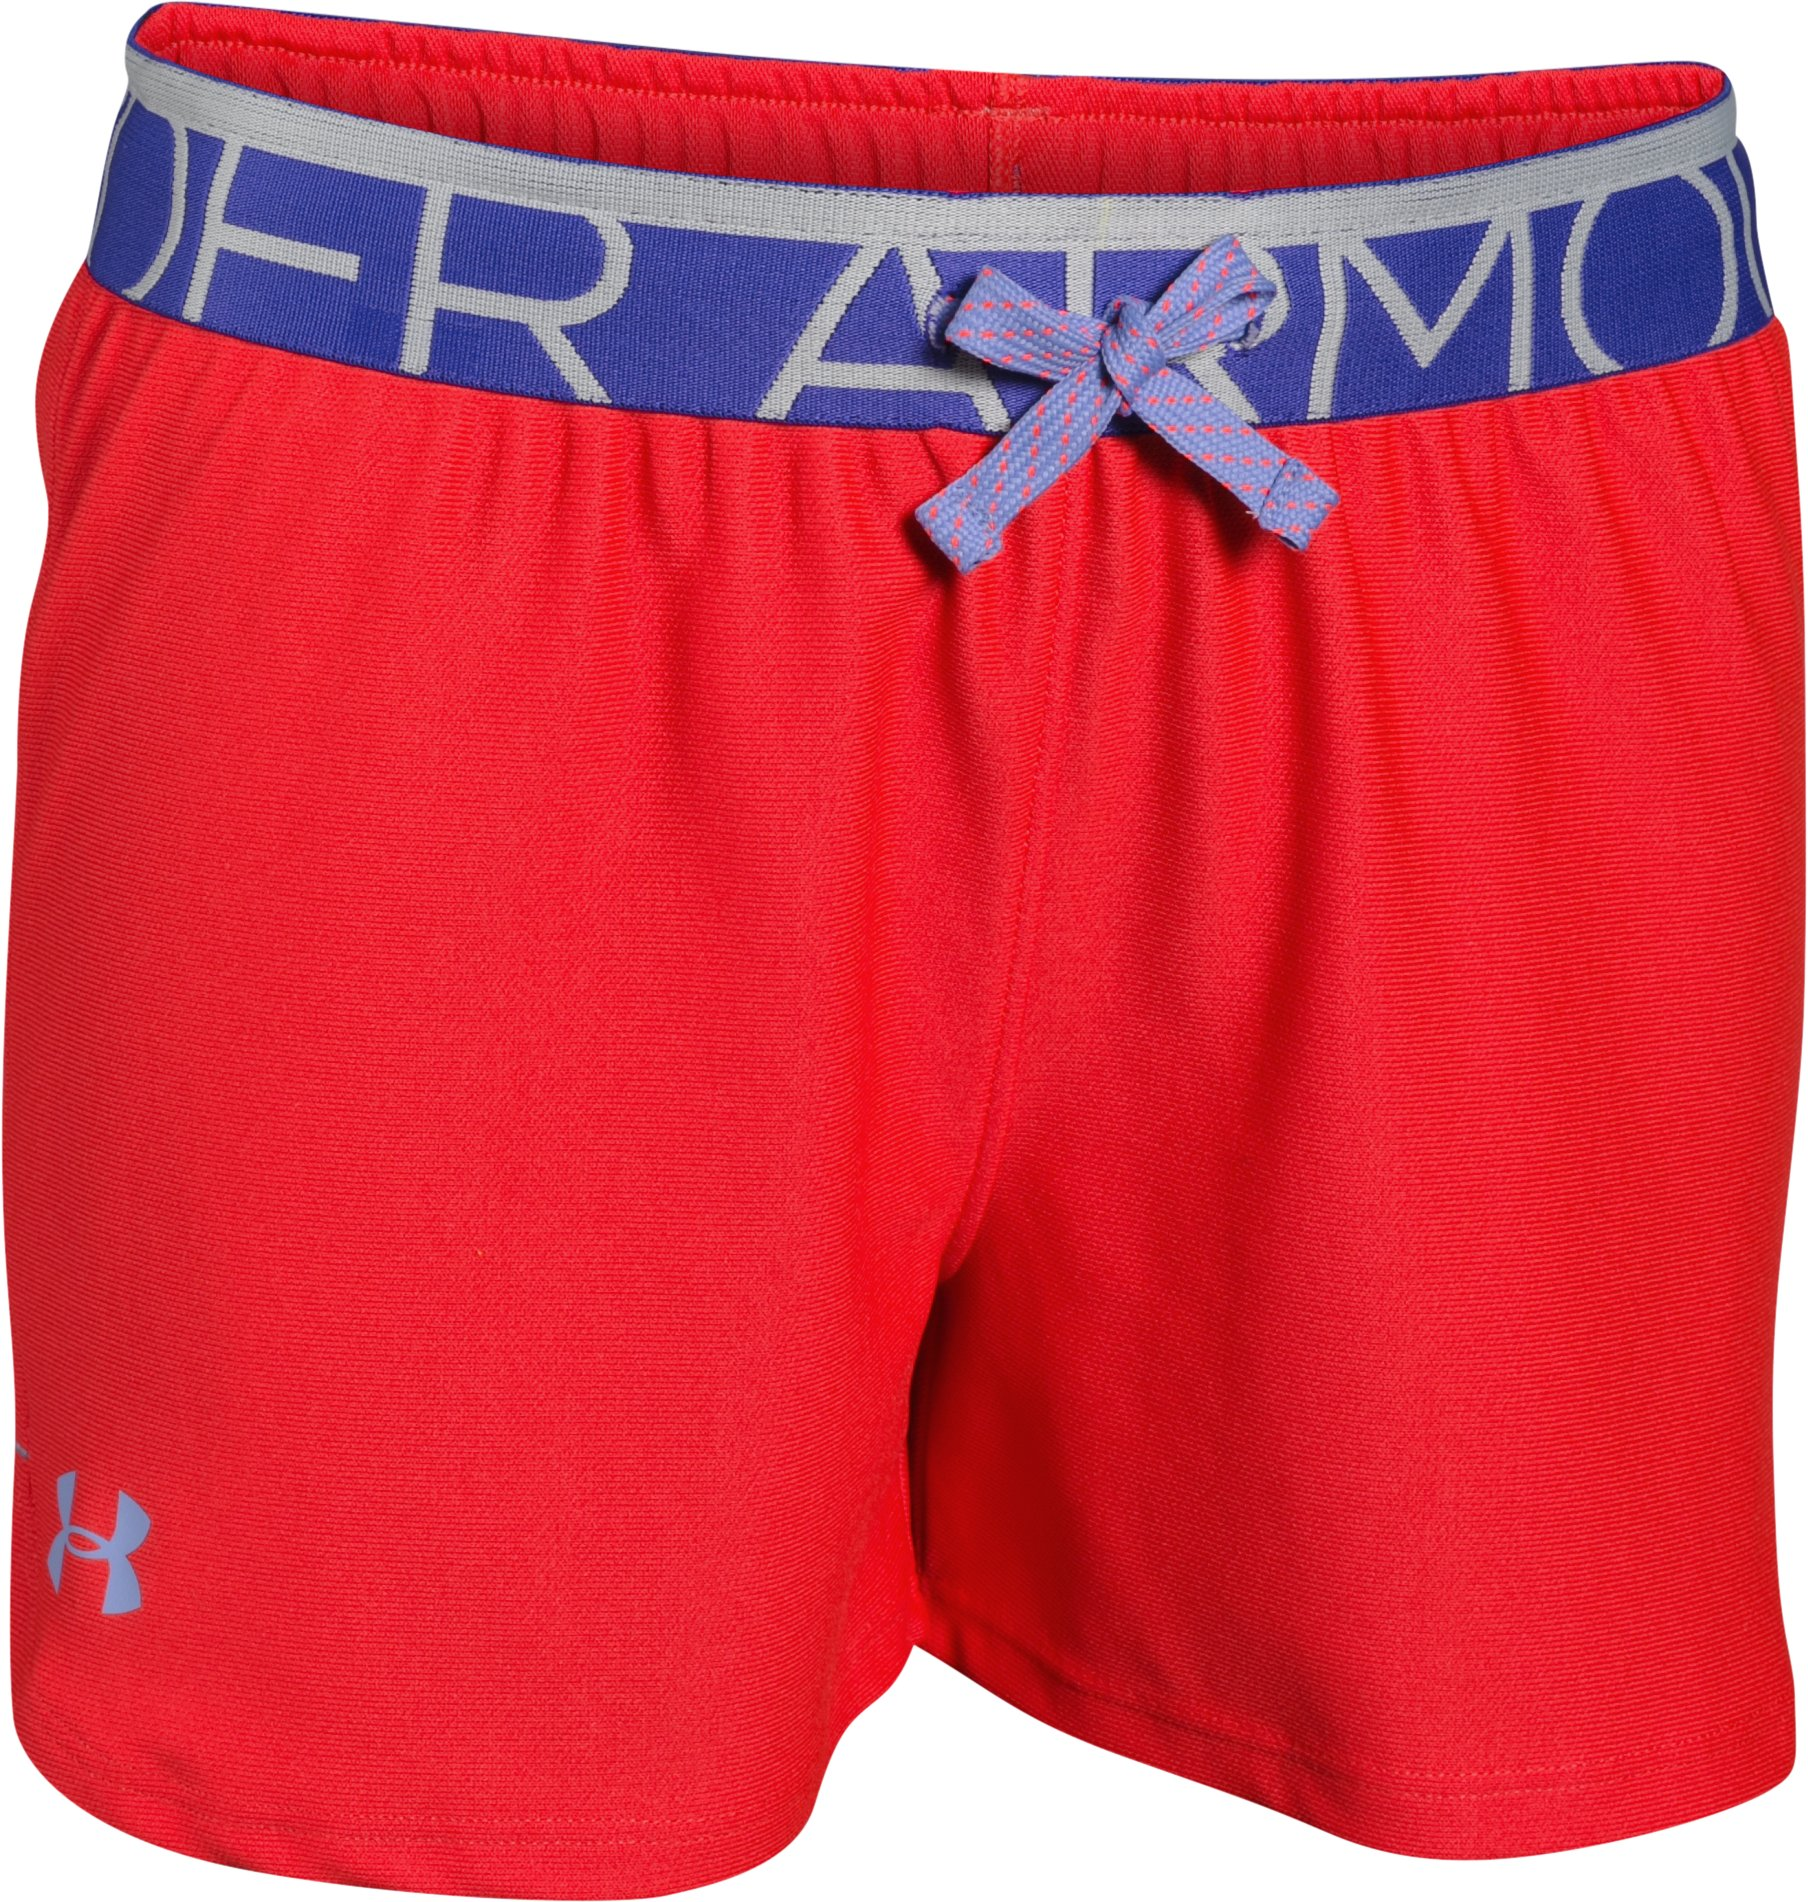 Girls' UA Play Up Shorts - 3 for $35, ROCKET RED,